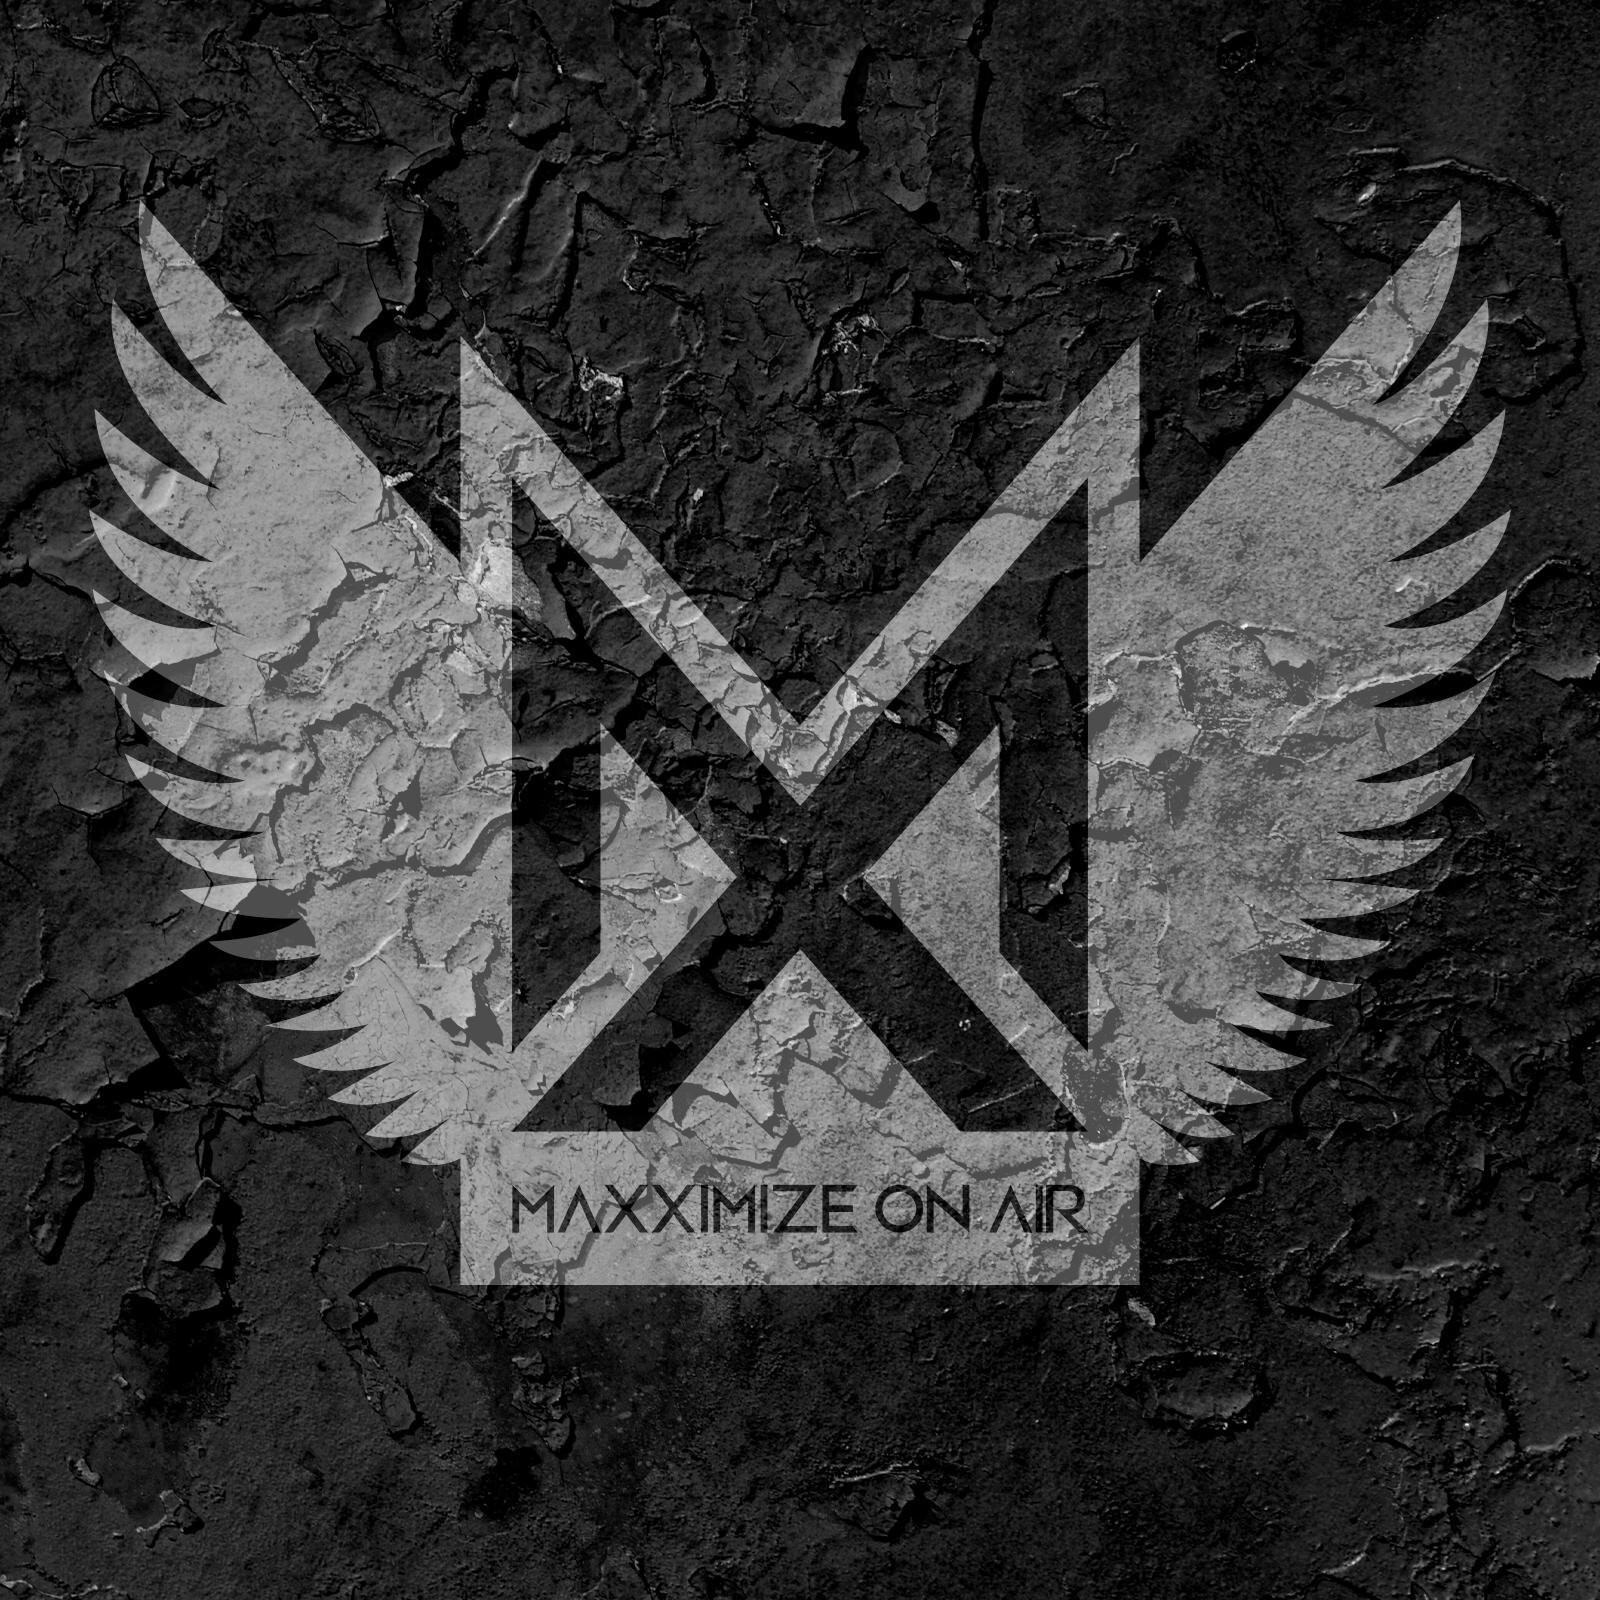 Maxximize On Air | Episode #068 mixed by Blasterjaxx